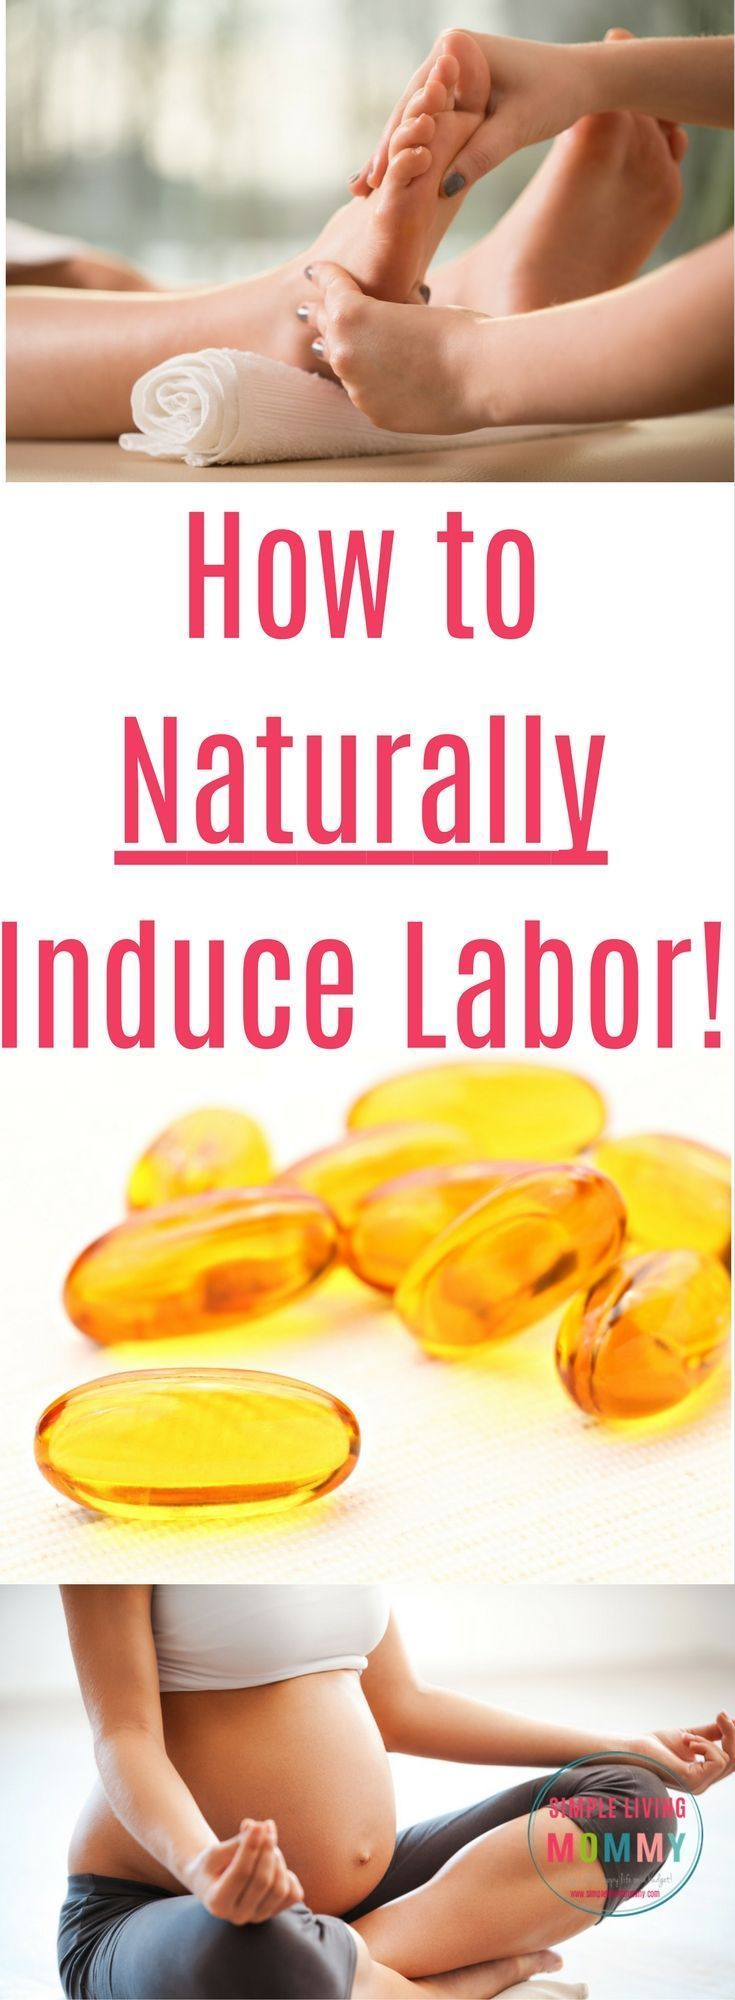 Whether you've gone overdue with your pregnancy or you're trying to avoid induction, there are tons of natural techniques you can try!  Here are some natural labor induction techniques to try, plus one that worked for this blogger to start her labor! #NaturalPregnancyAdvice #NaturalPregnancyLife